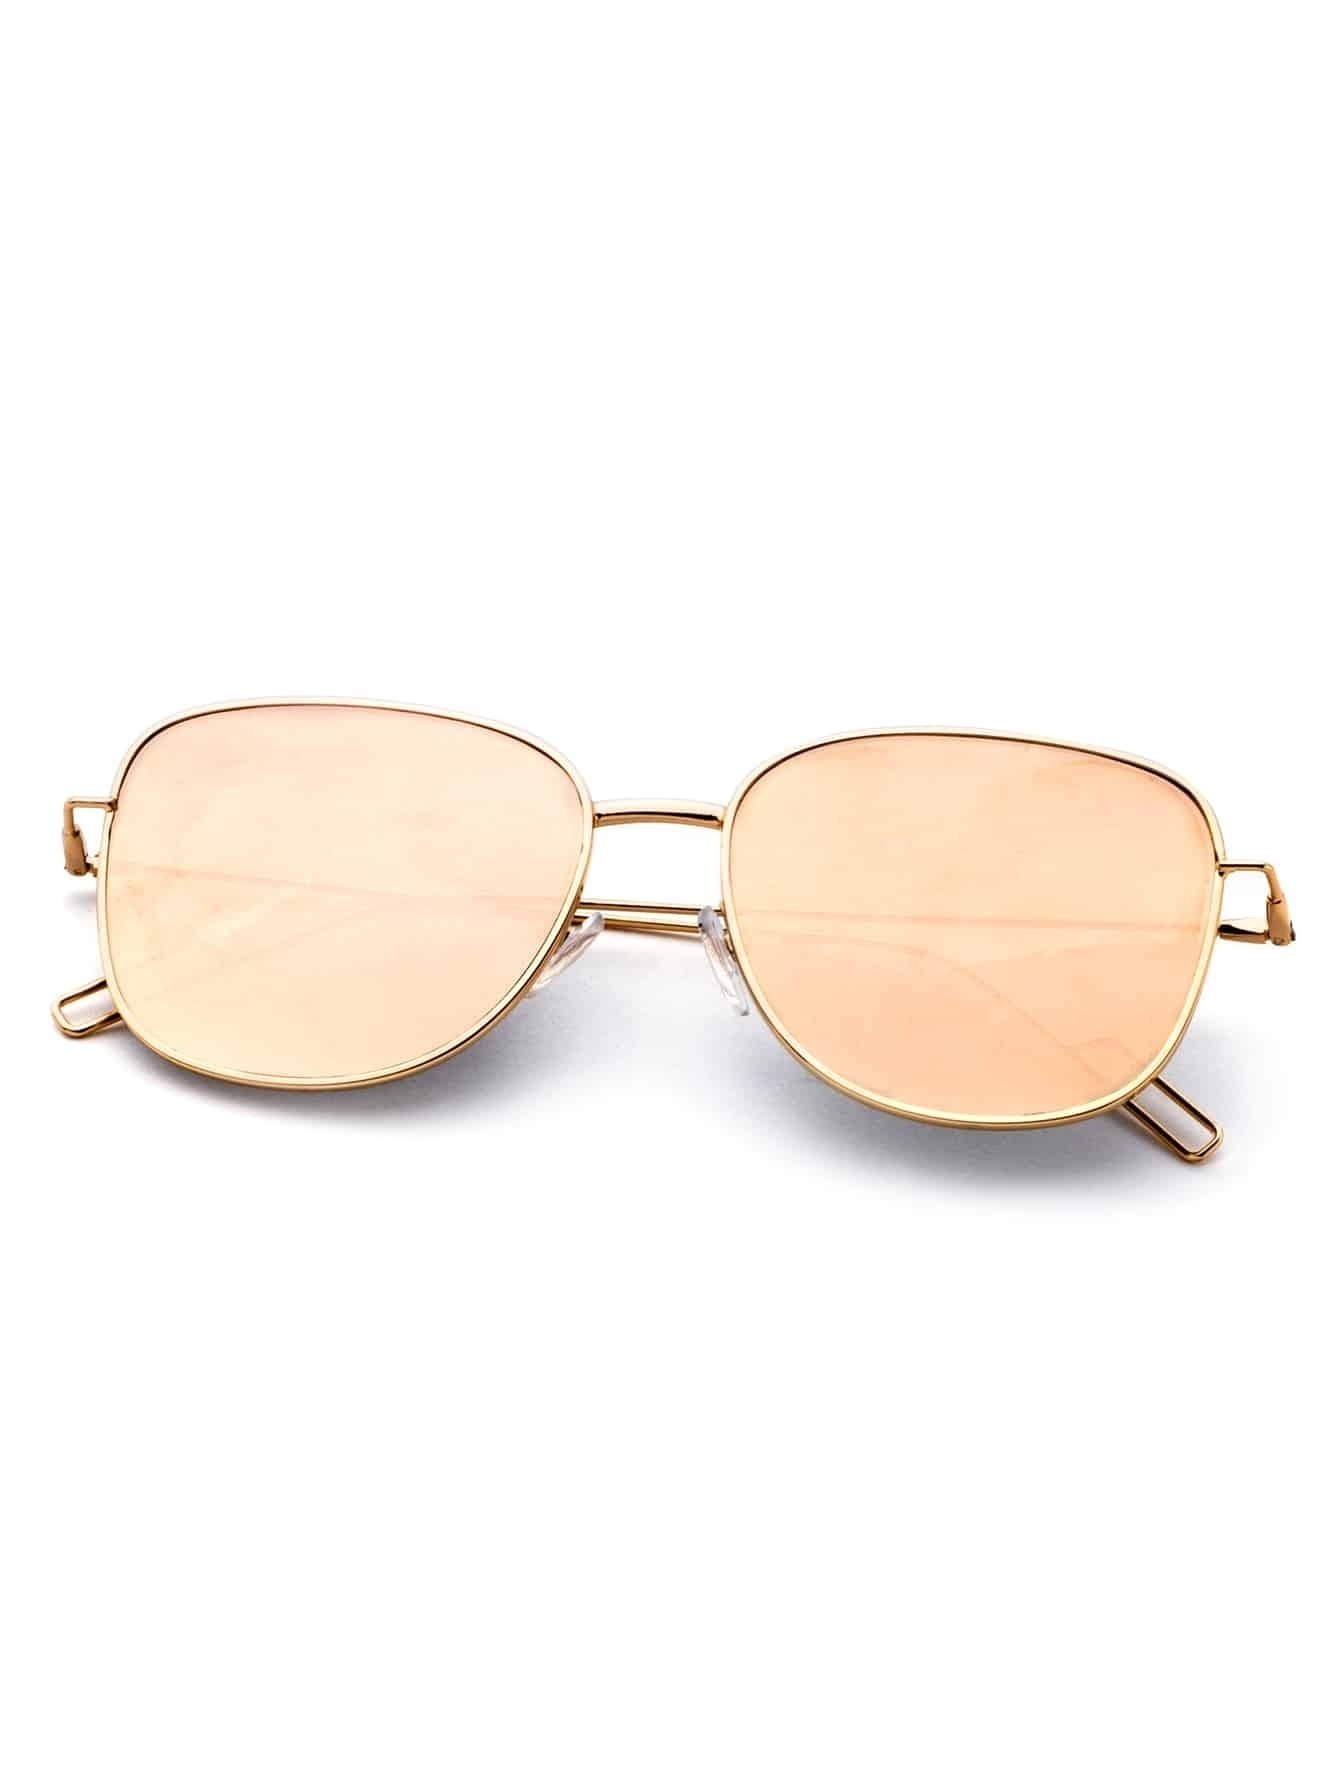 Square Gold Frame Sunglasses : Gold Frame Square Sunglasses